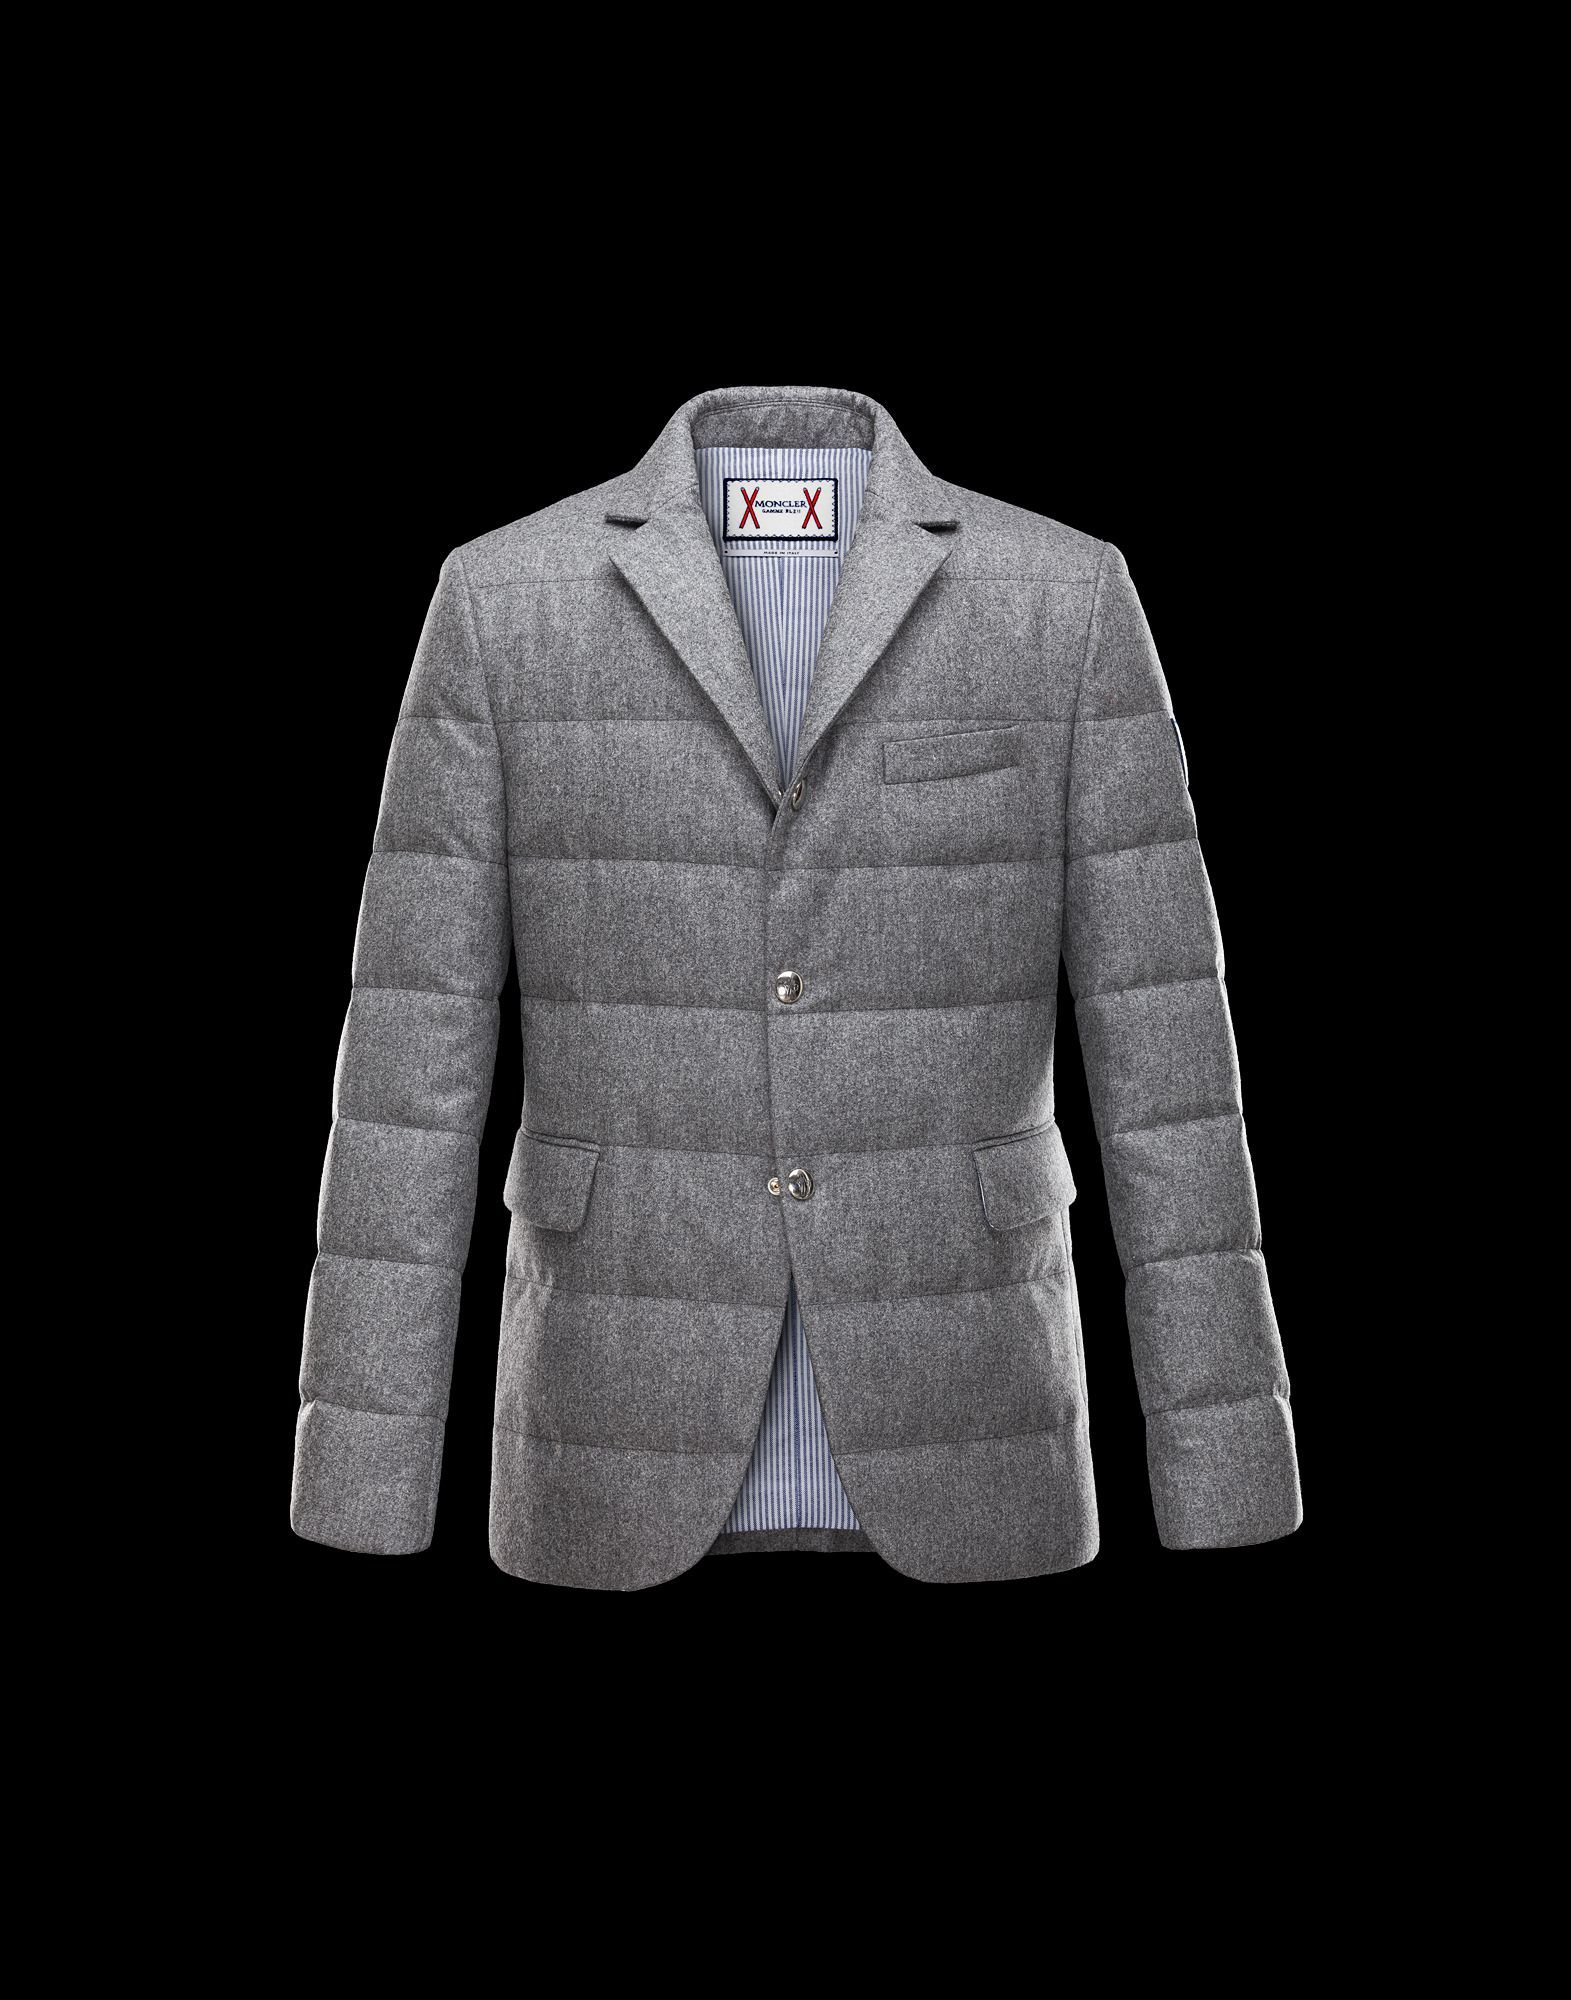 new product 2d094 f2100 Pin by Bal Harbour Shops on Moncler in 2019   Moncler, Coat ...